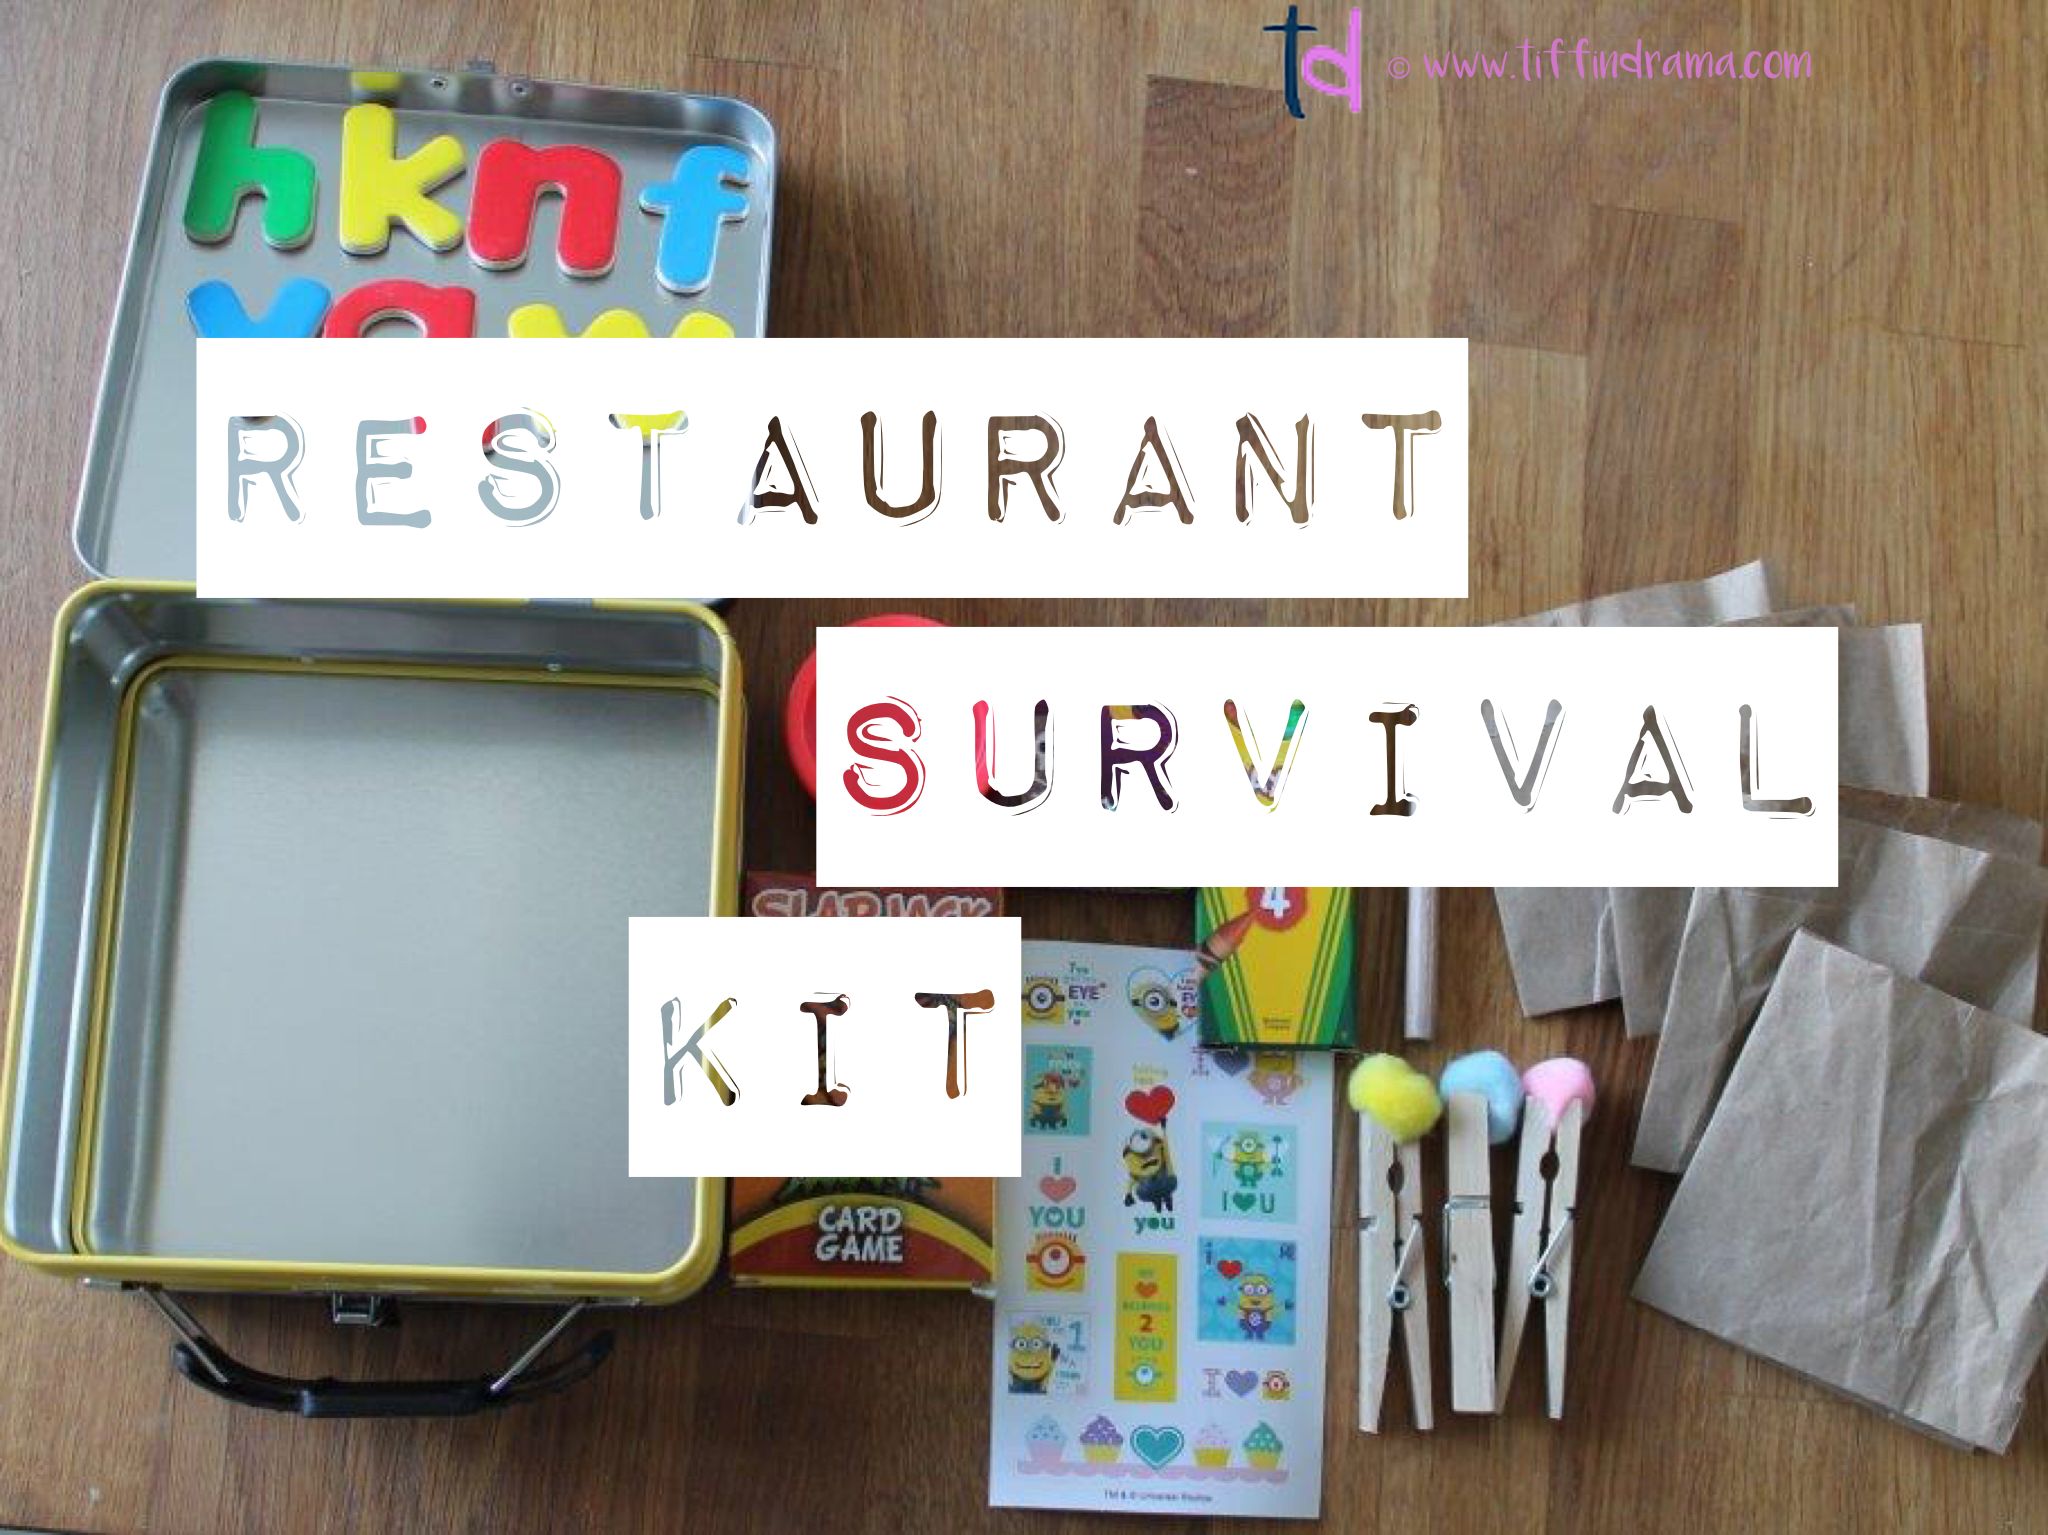 RestaurantSurvivalKit